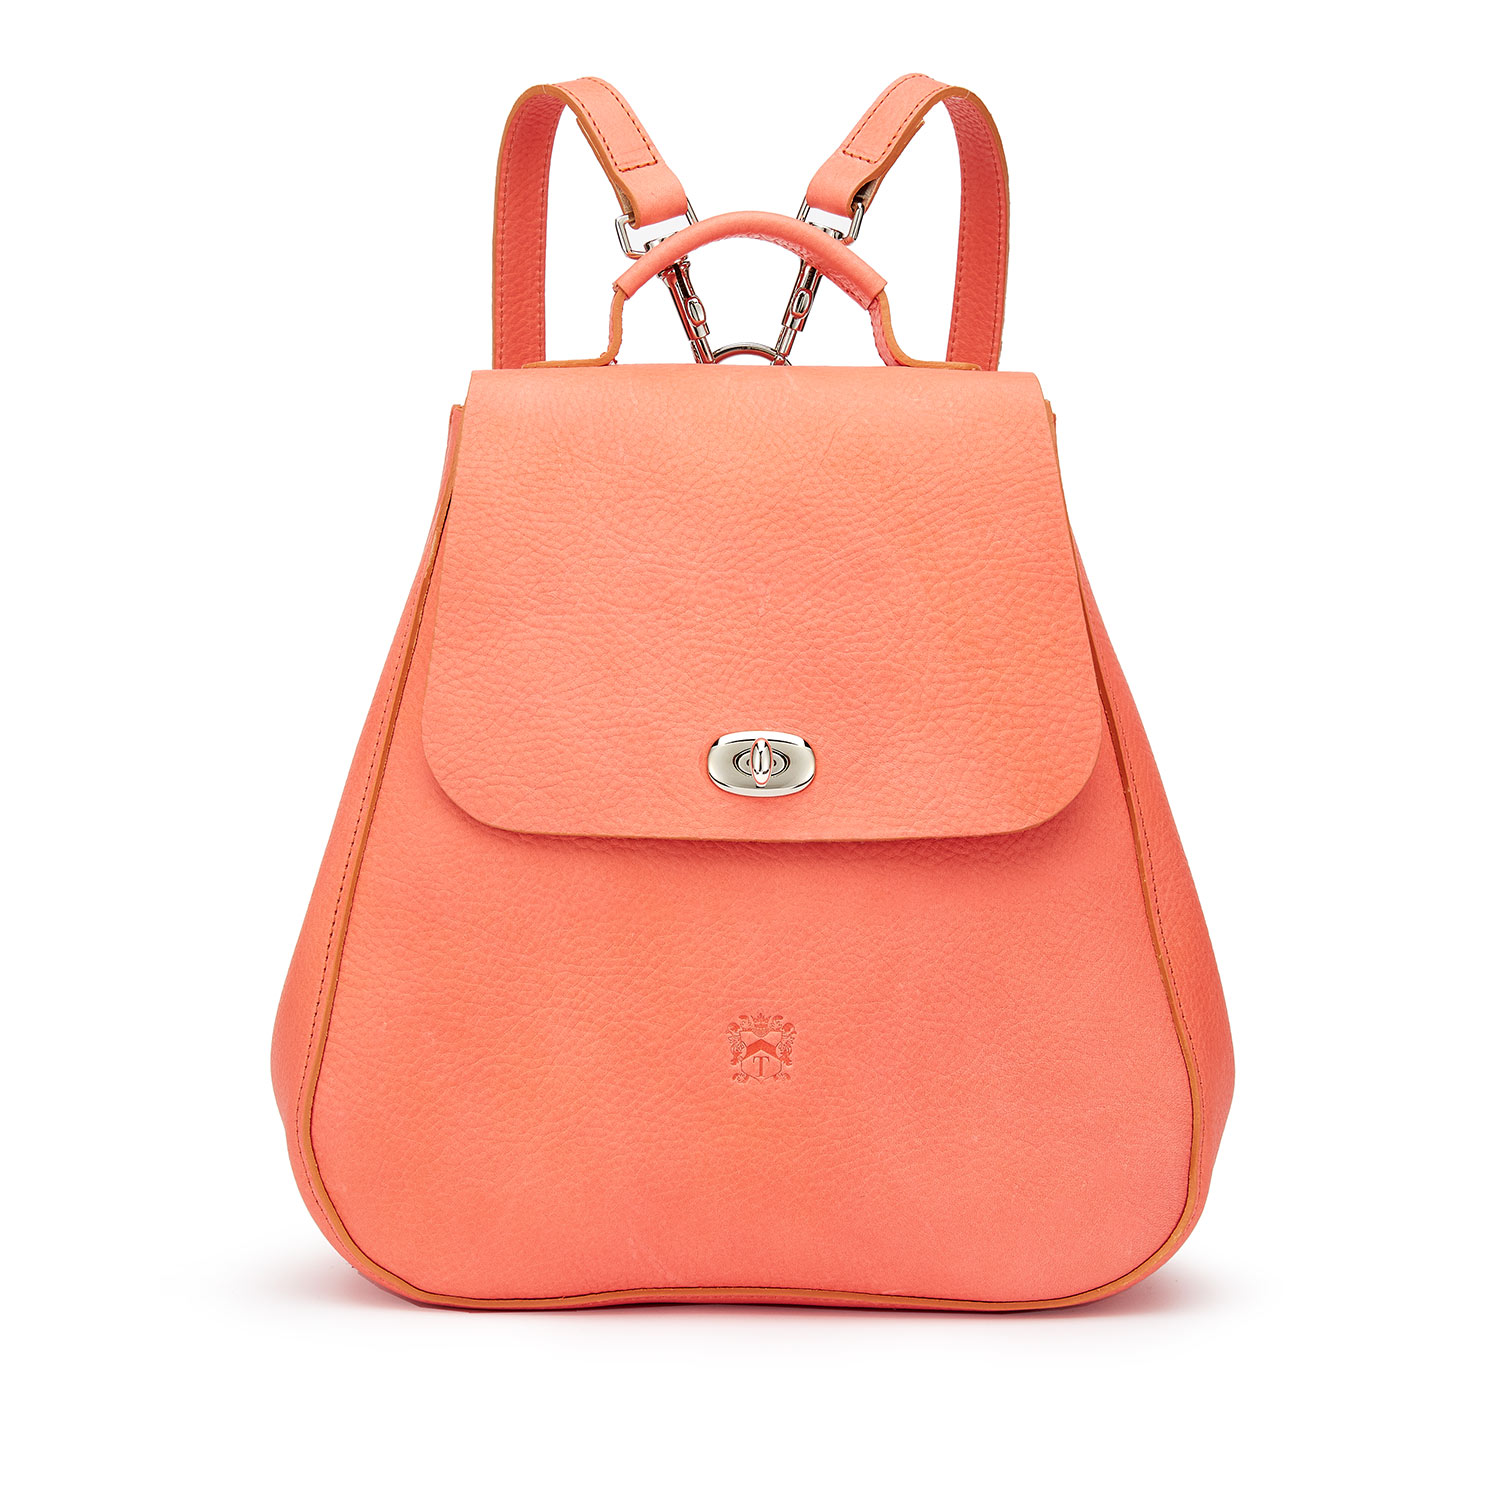 Tusting Eliza Leather Backpack in Coral